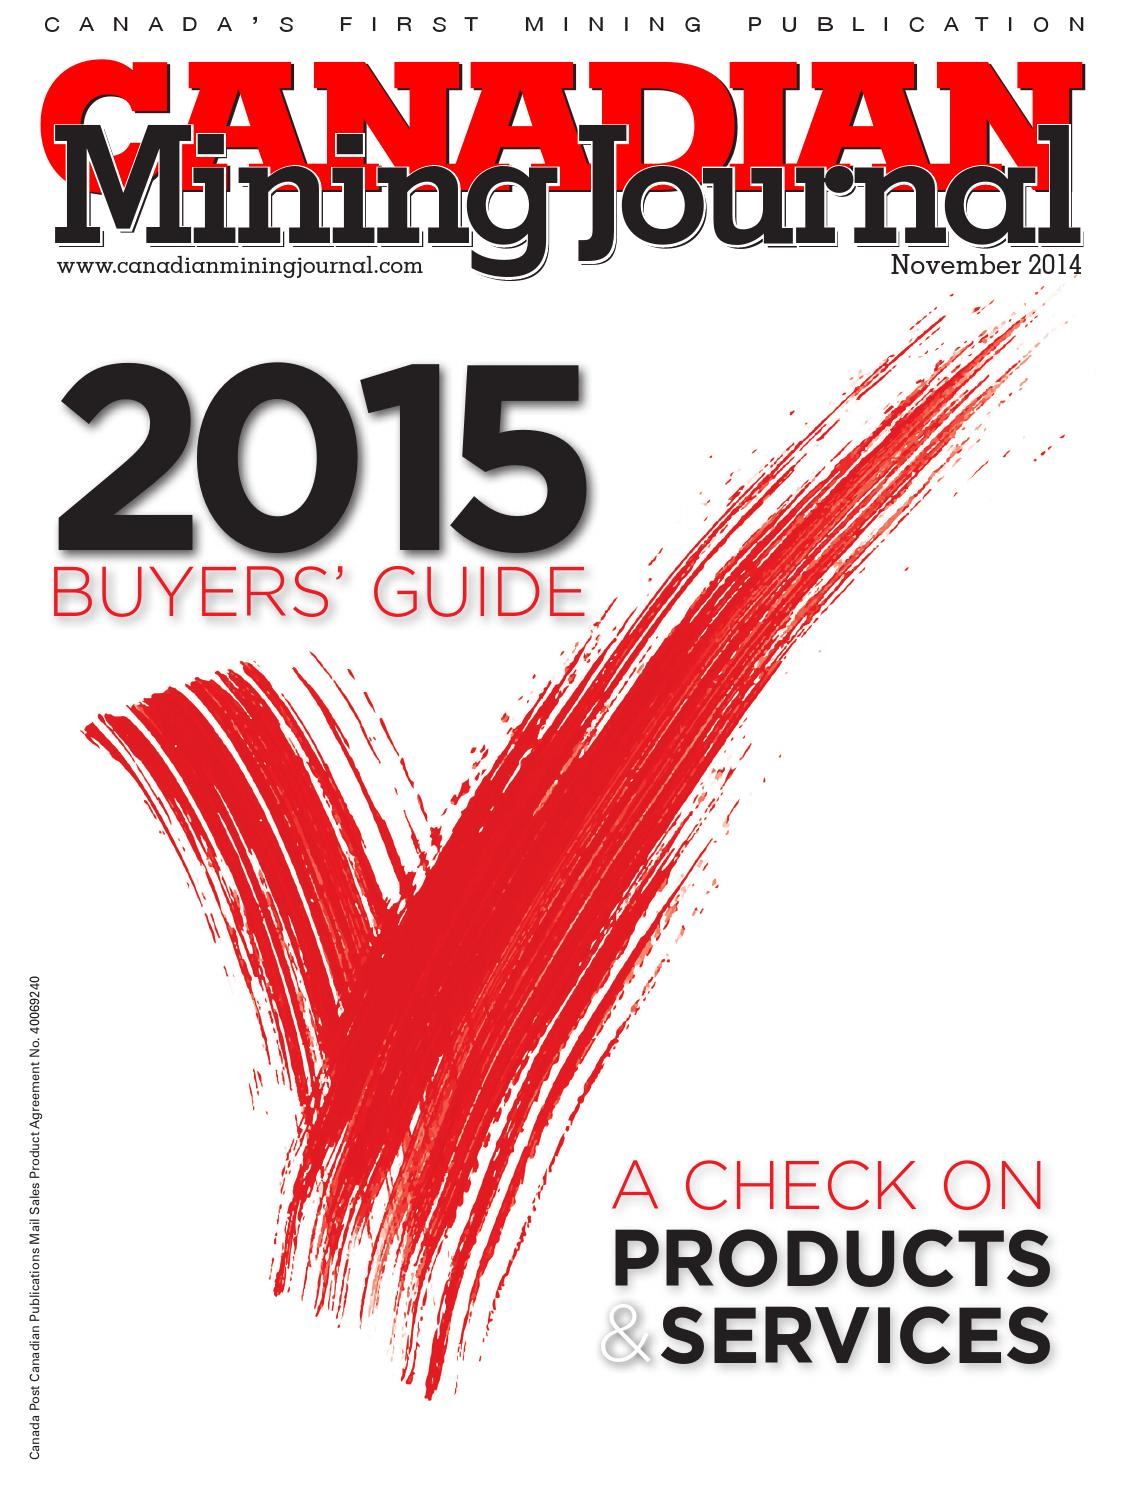 Canadian Mining Journal November 2014 By The Northern Miner Group Series Of Resistors For Use In Circuit Bo Stock Image T355 0191 Issuu